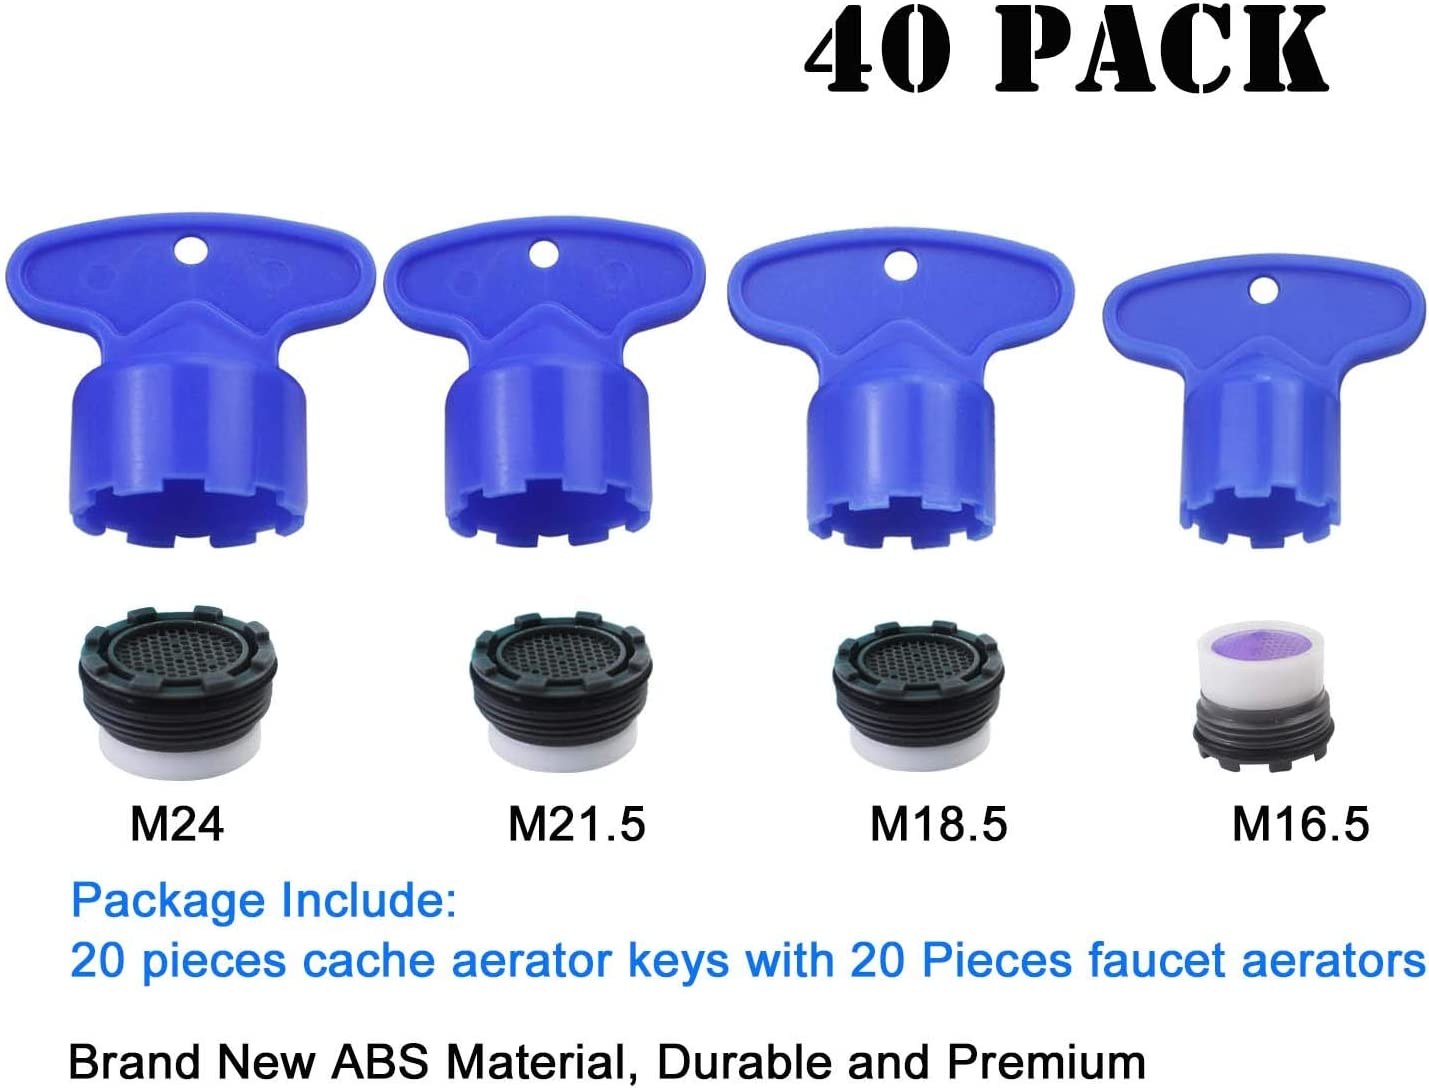 Pack of 5 4 Set Removal Wrench Tool for M 16.5 18.5 22.5 24 Cache aerators Cache Faucet Aerator Key